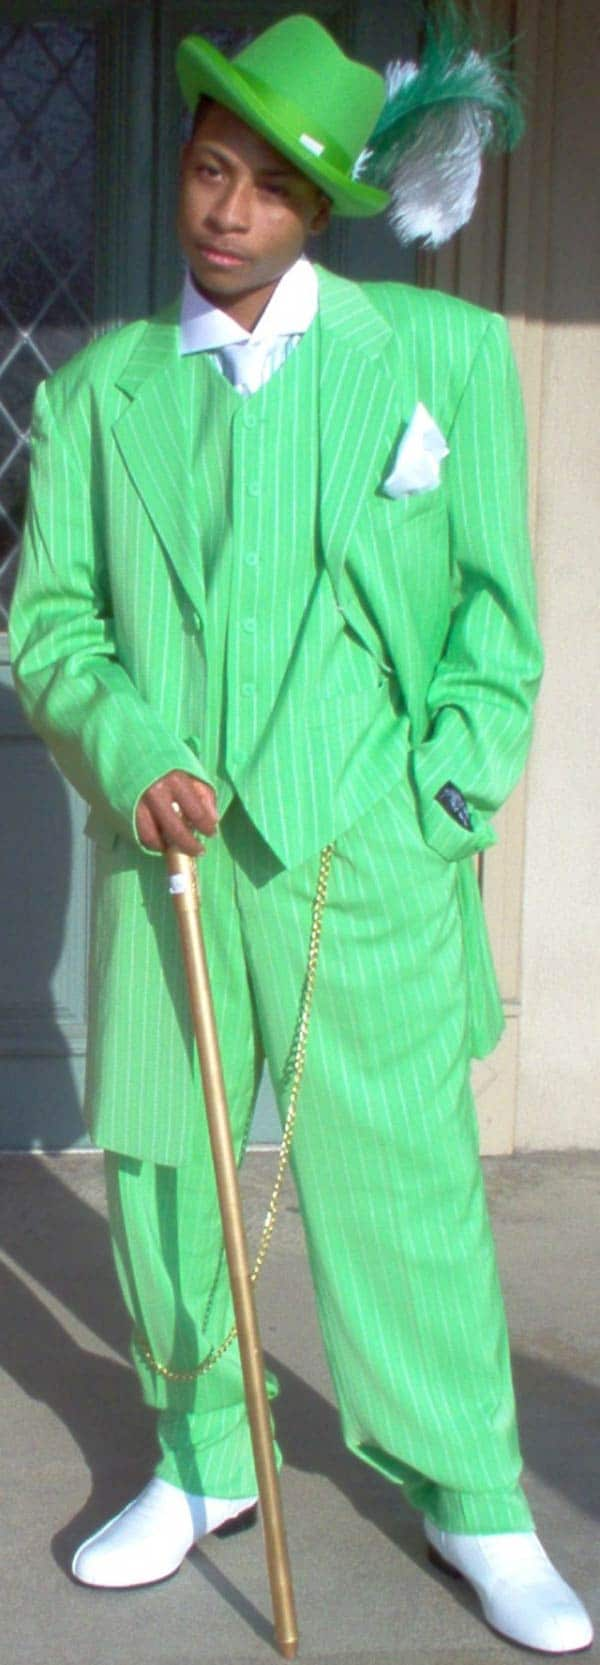 Green Suits For men Top Hats